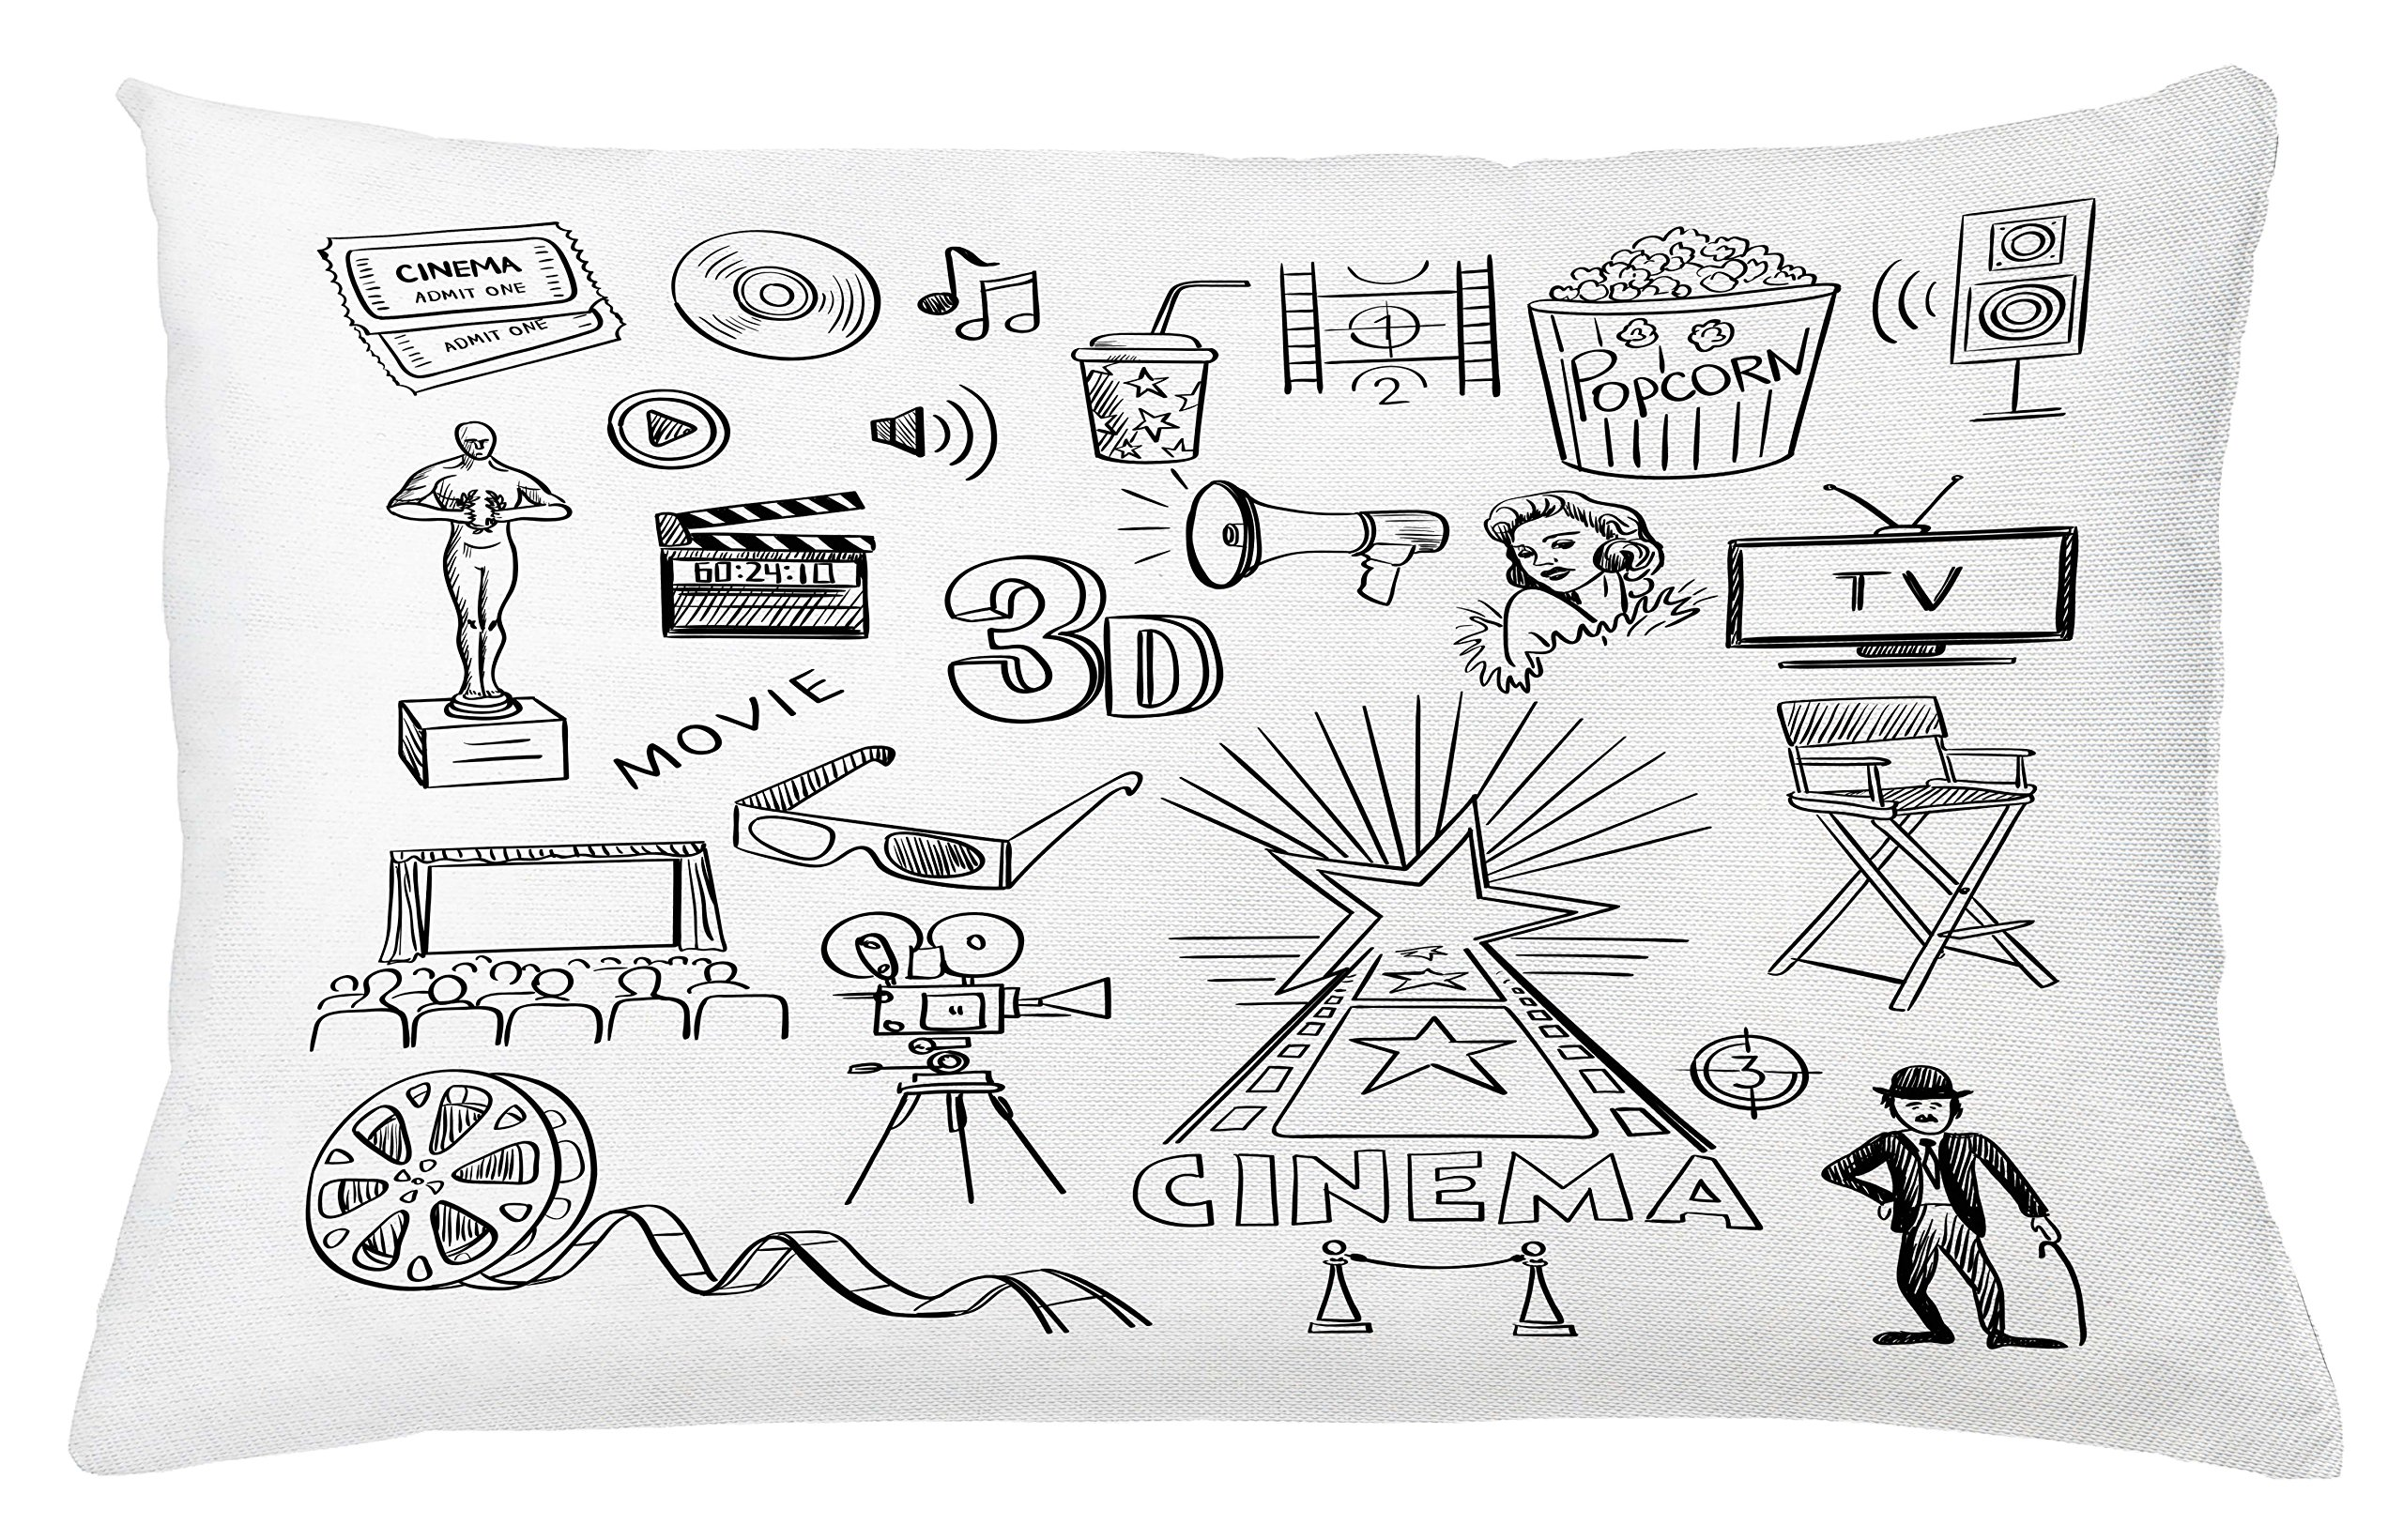 Ambesonne Movie Theater Throw Pillow Cushion Cover, Hand Drawn Symbols of Hollywood Oscar 3D Glasses Sketch Style Arrangement, Decorative Square Accent Pillow Case, 26 X 16 inches, Black White